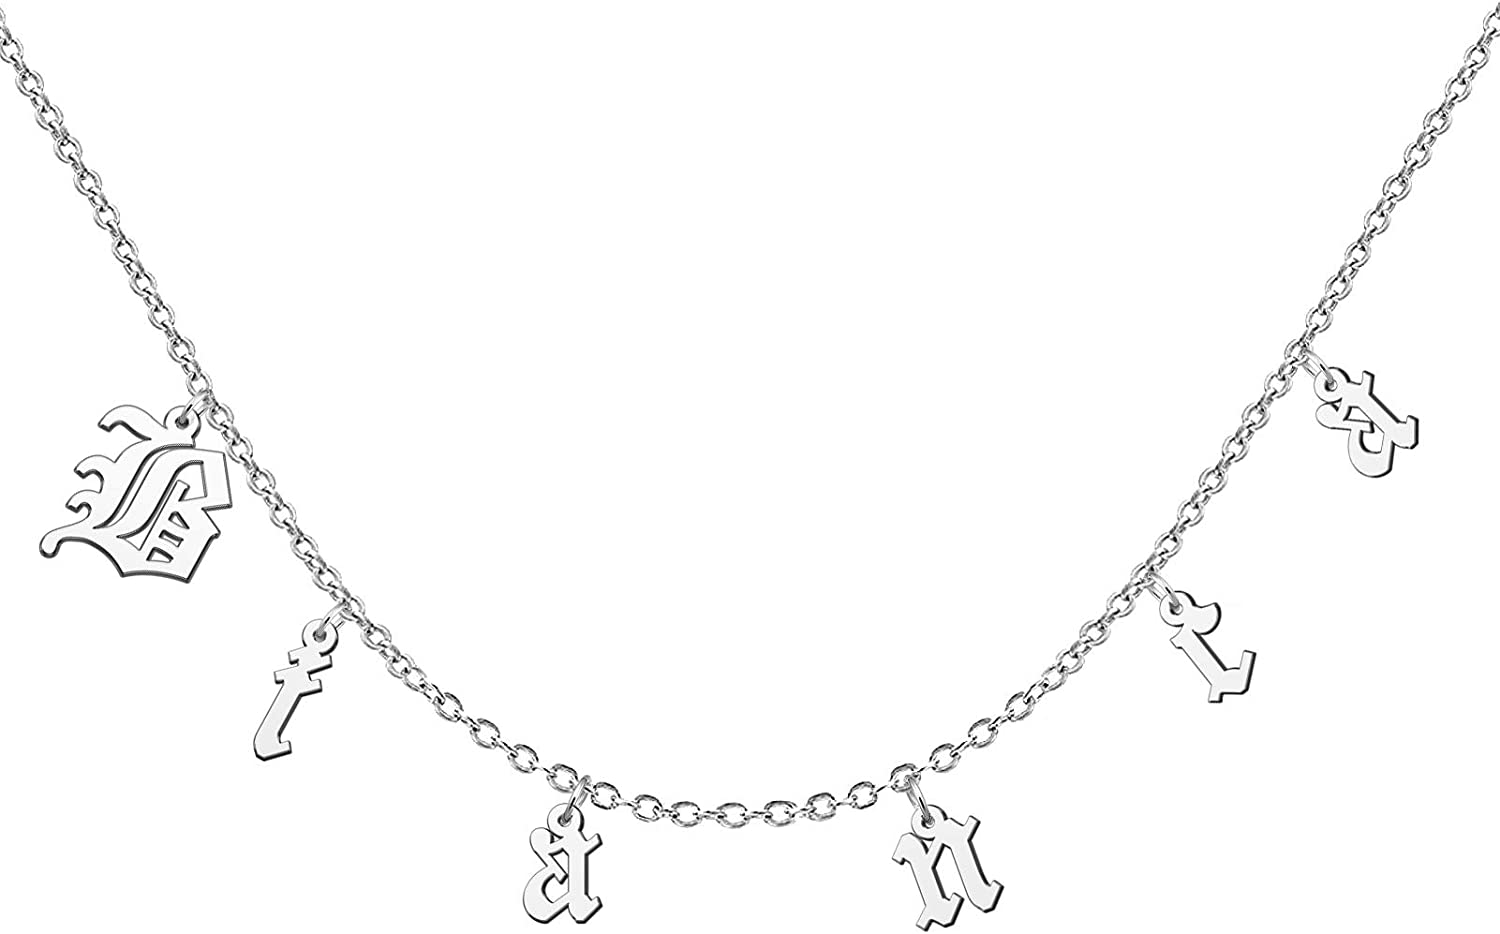 YSAHan Gothic Old English Font initial Name Chain Necklaces Personalized Stainless Steel Jewelry Gift for Women Choker